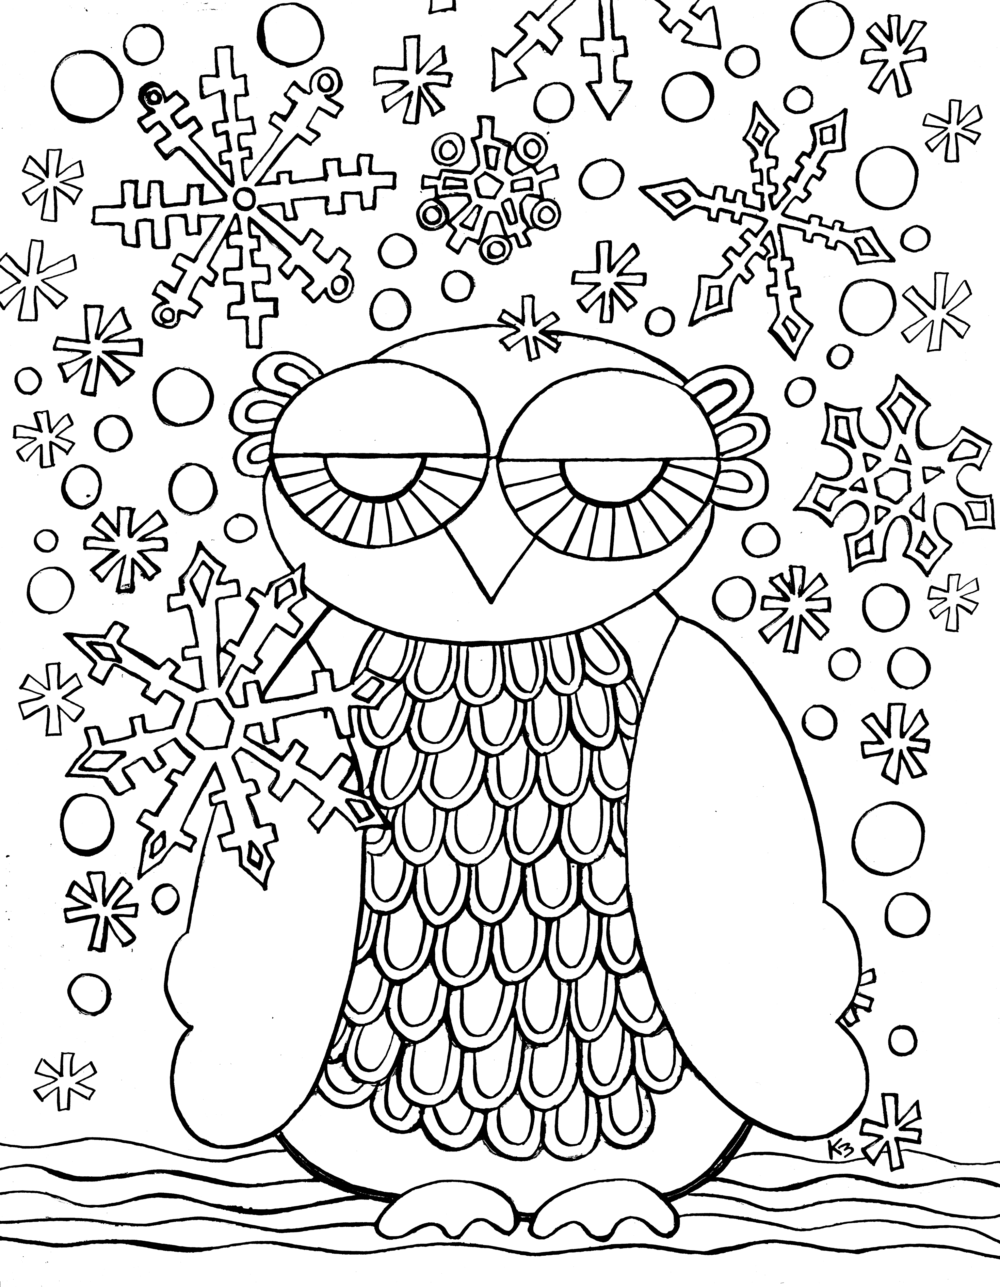 Free Winter Owl coloring page - From Victory Road